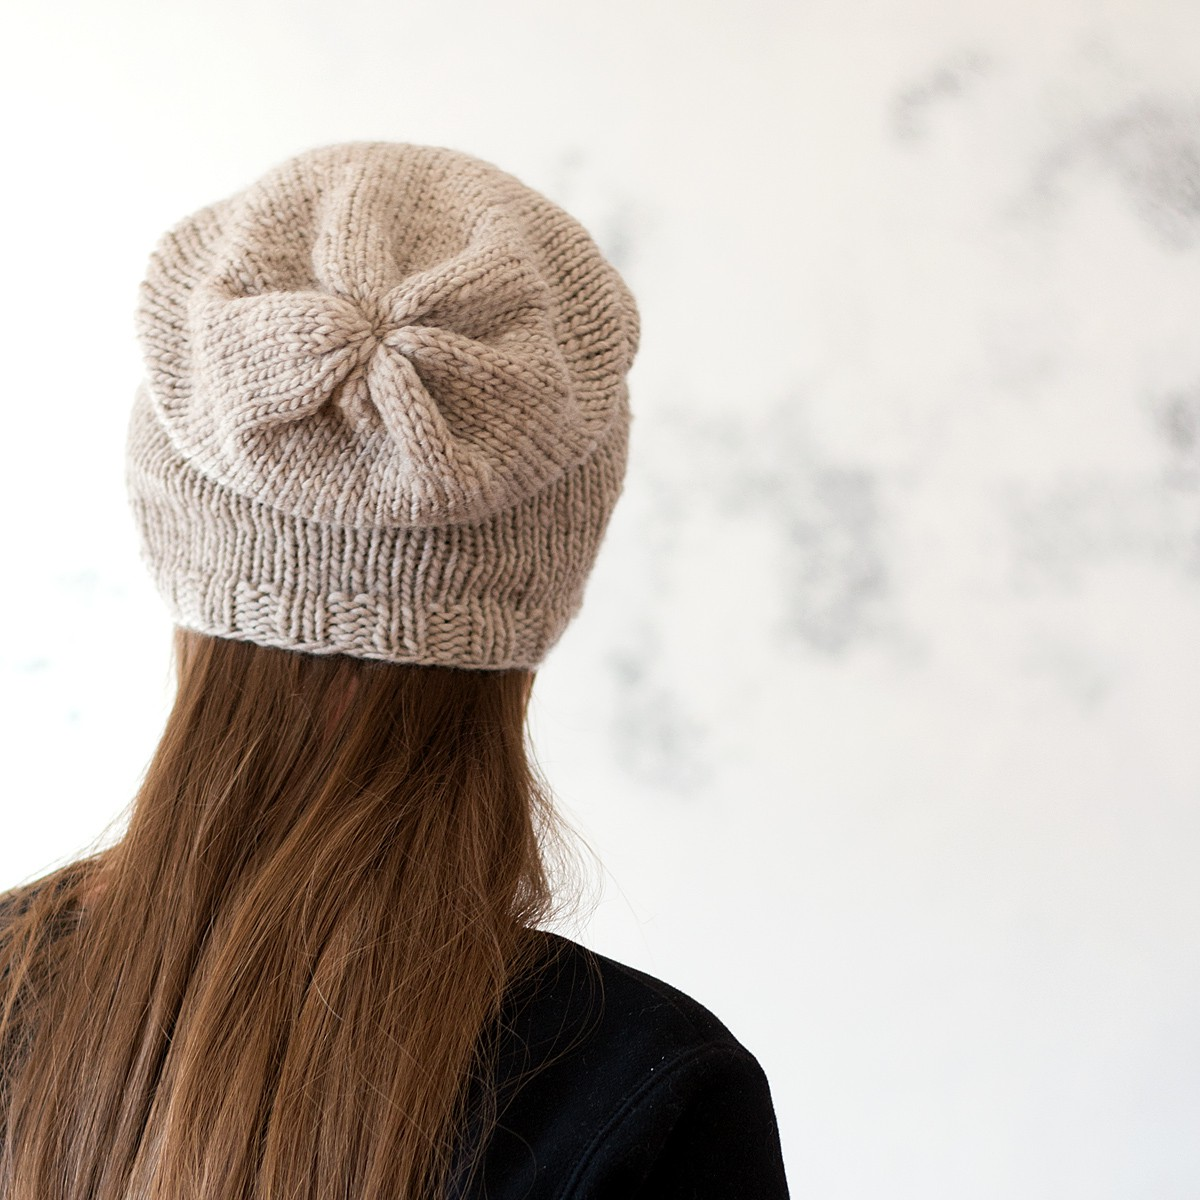 Womens Knit Hat Pattern : INPSIRATIONAL : Women s Slouchy Hat Knitting Pattern ...